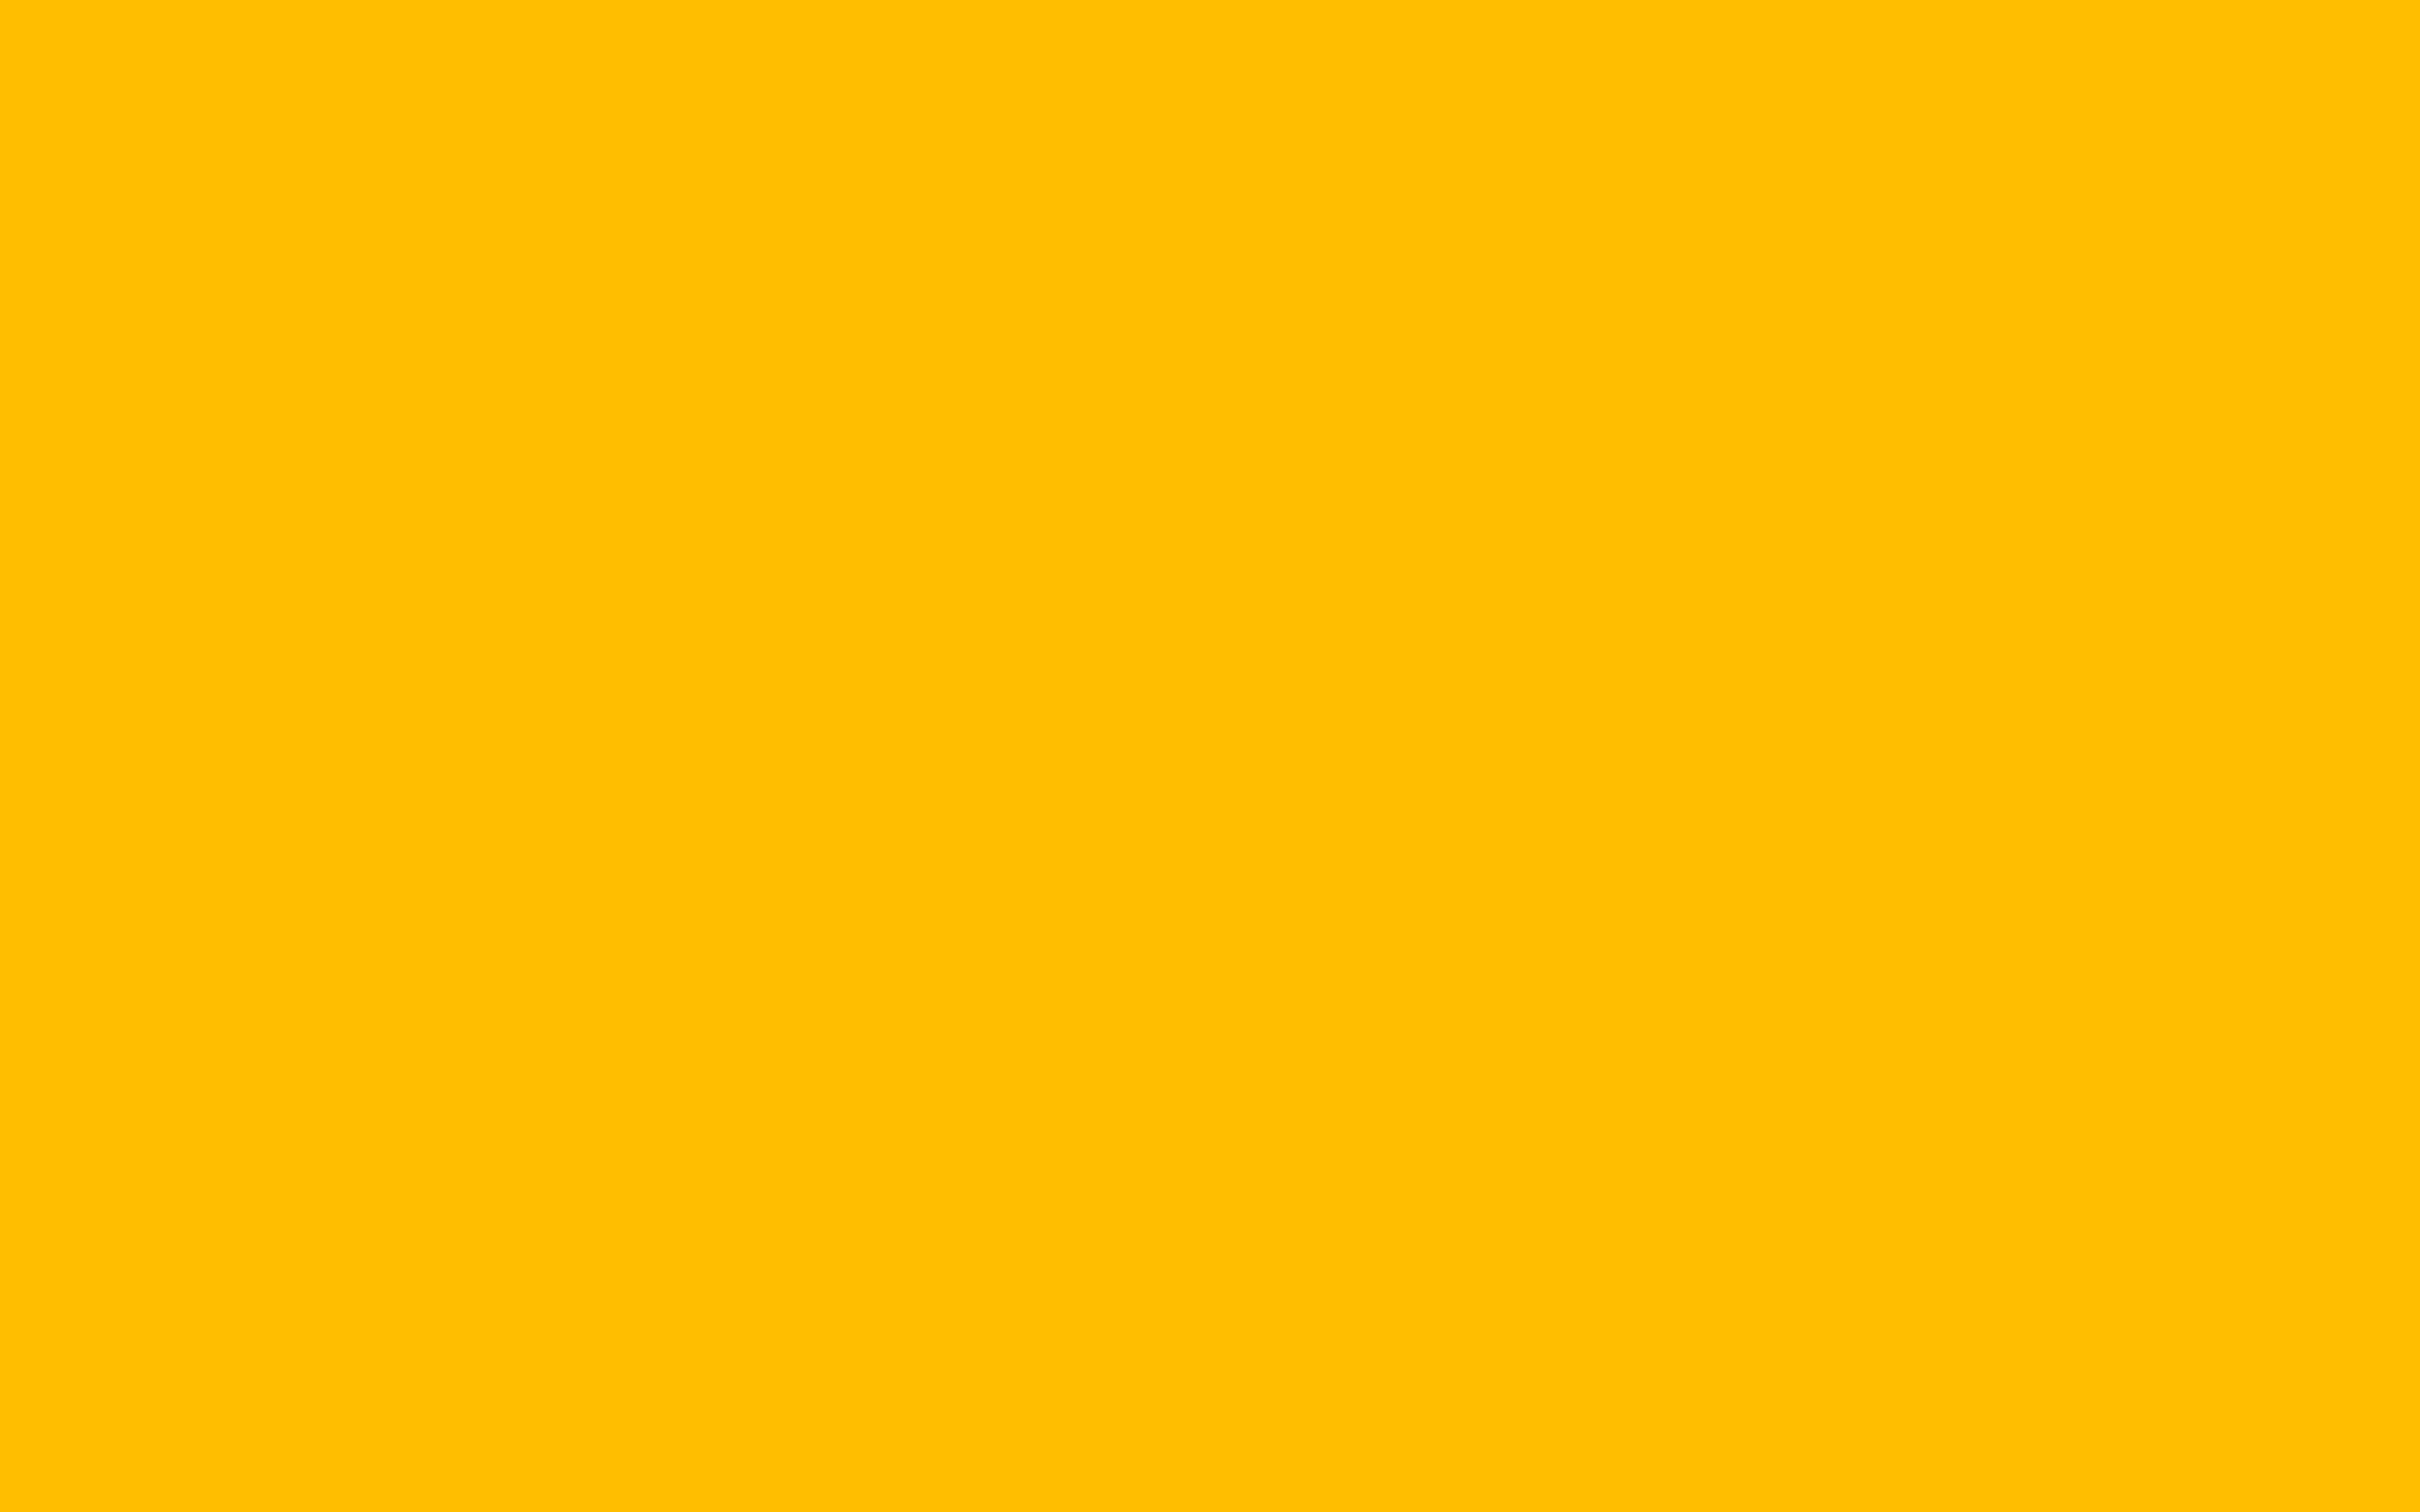 Which 2880x1800 Amber Solid Color Background